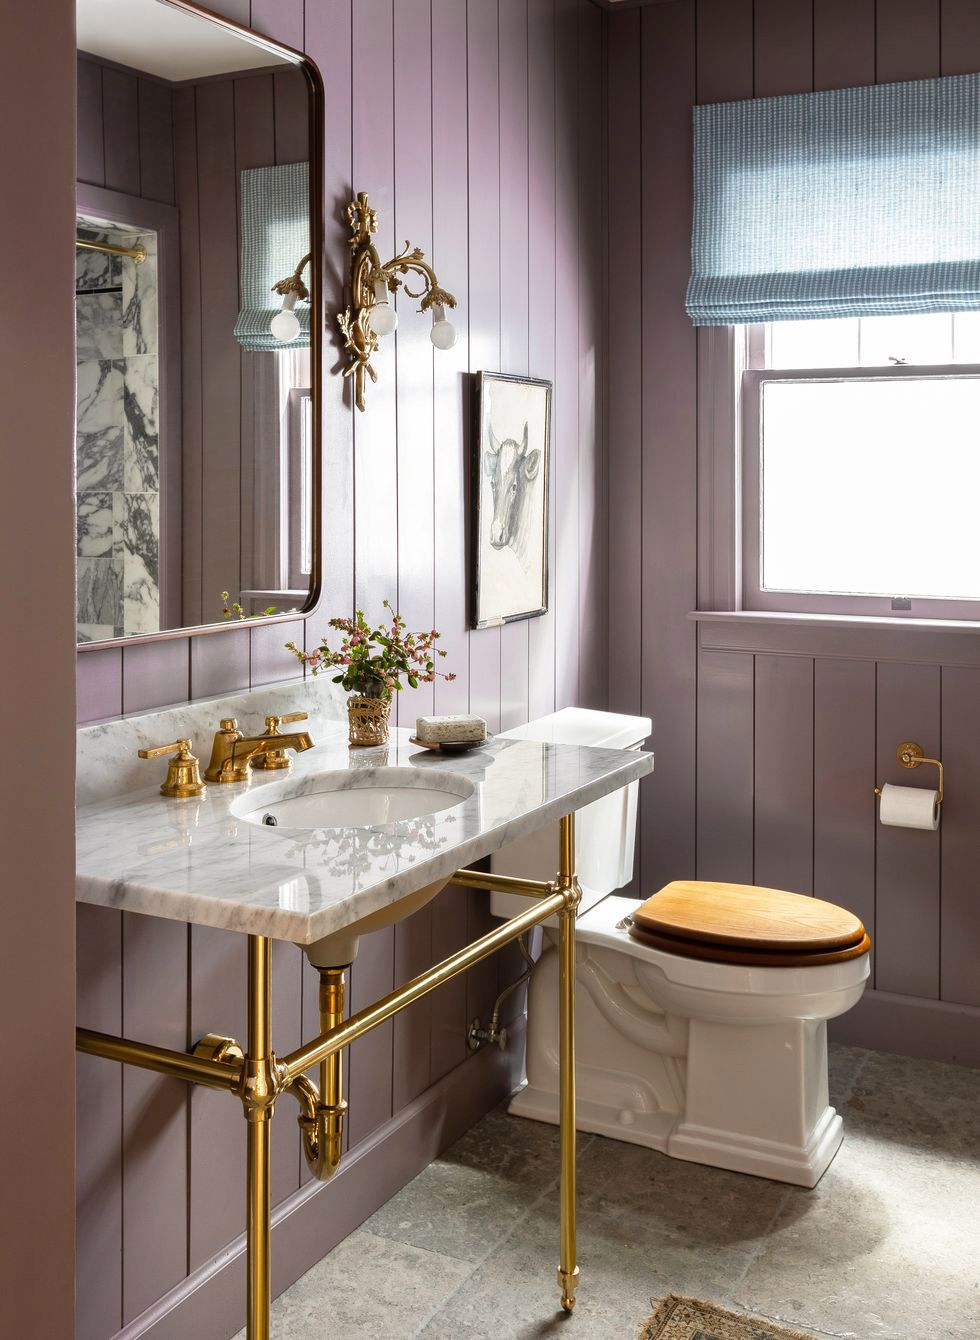 30 Small Bathroom Design Ideas Solutions